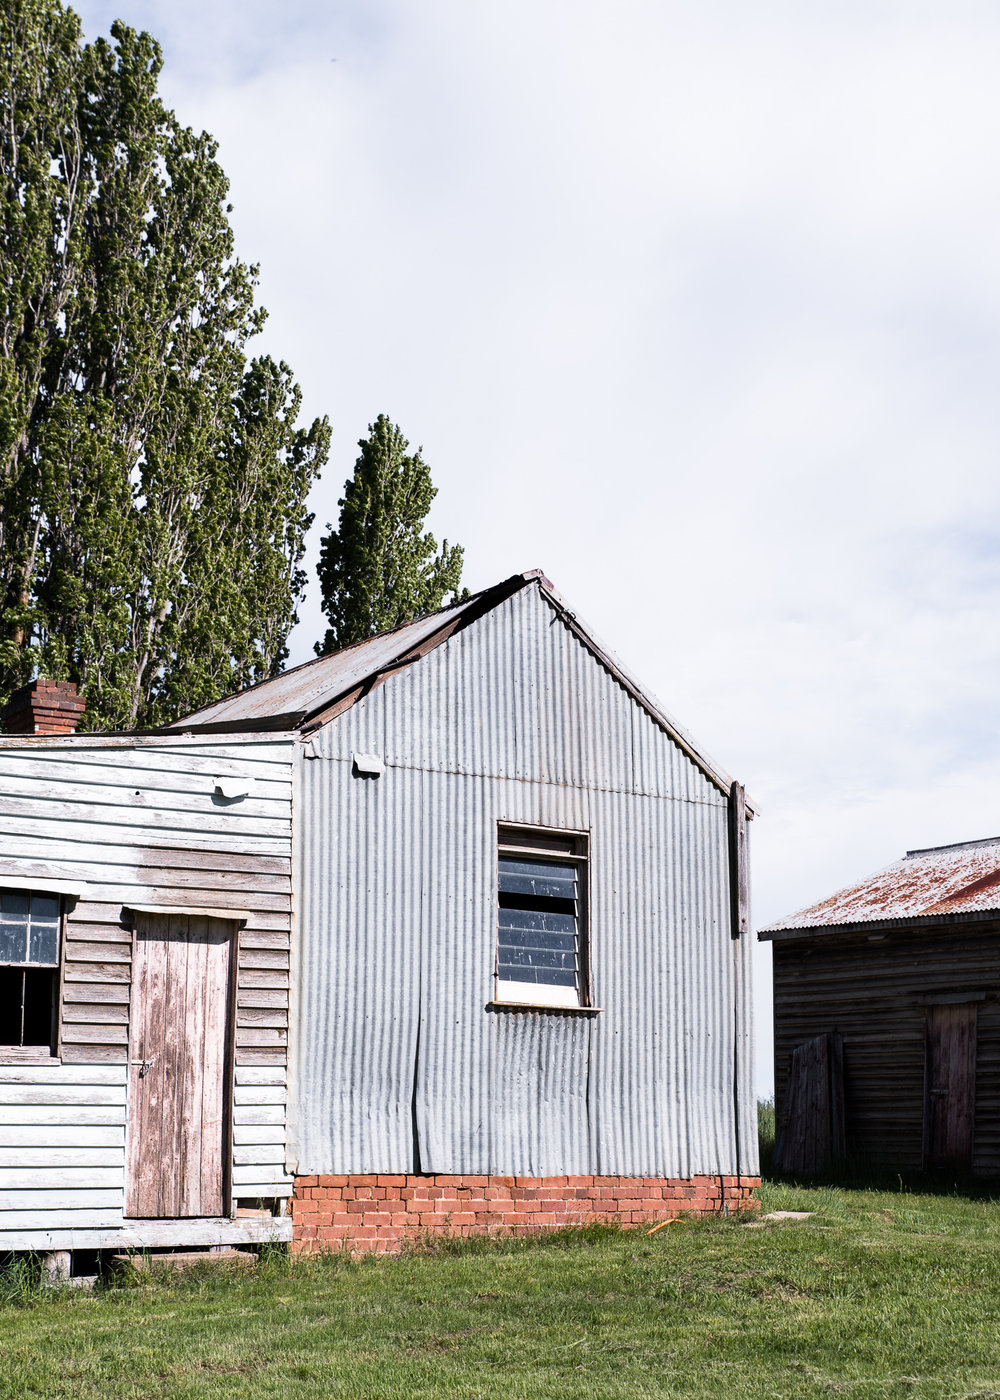 Working farm buildings and unique accommodation at Mona Farm